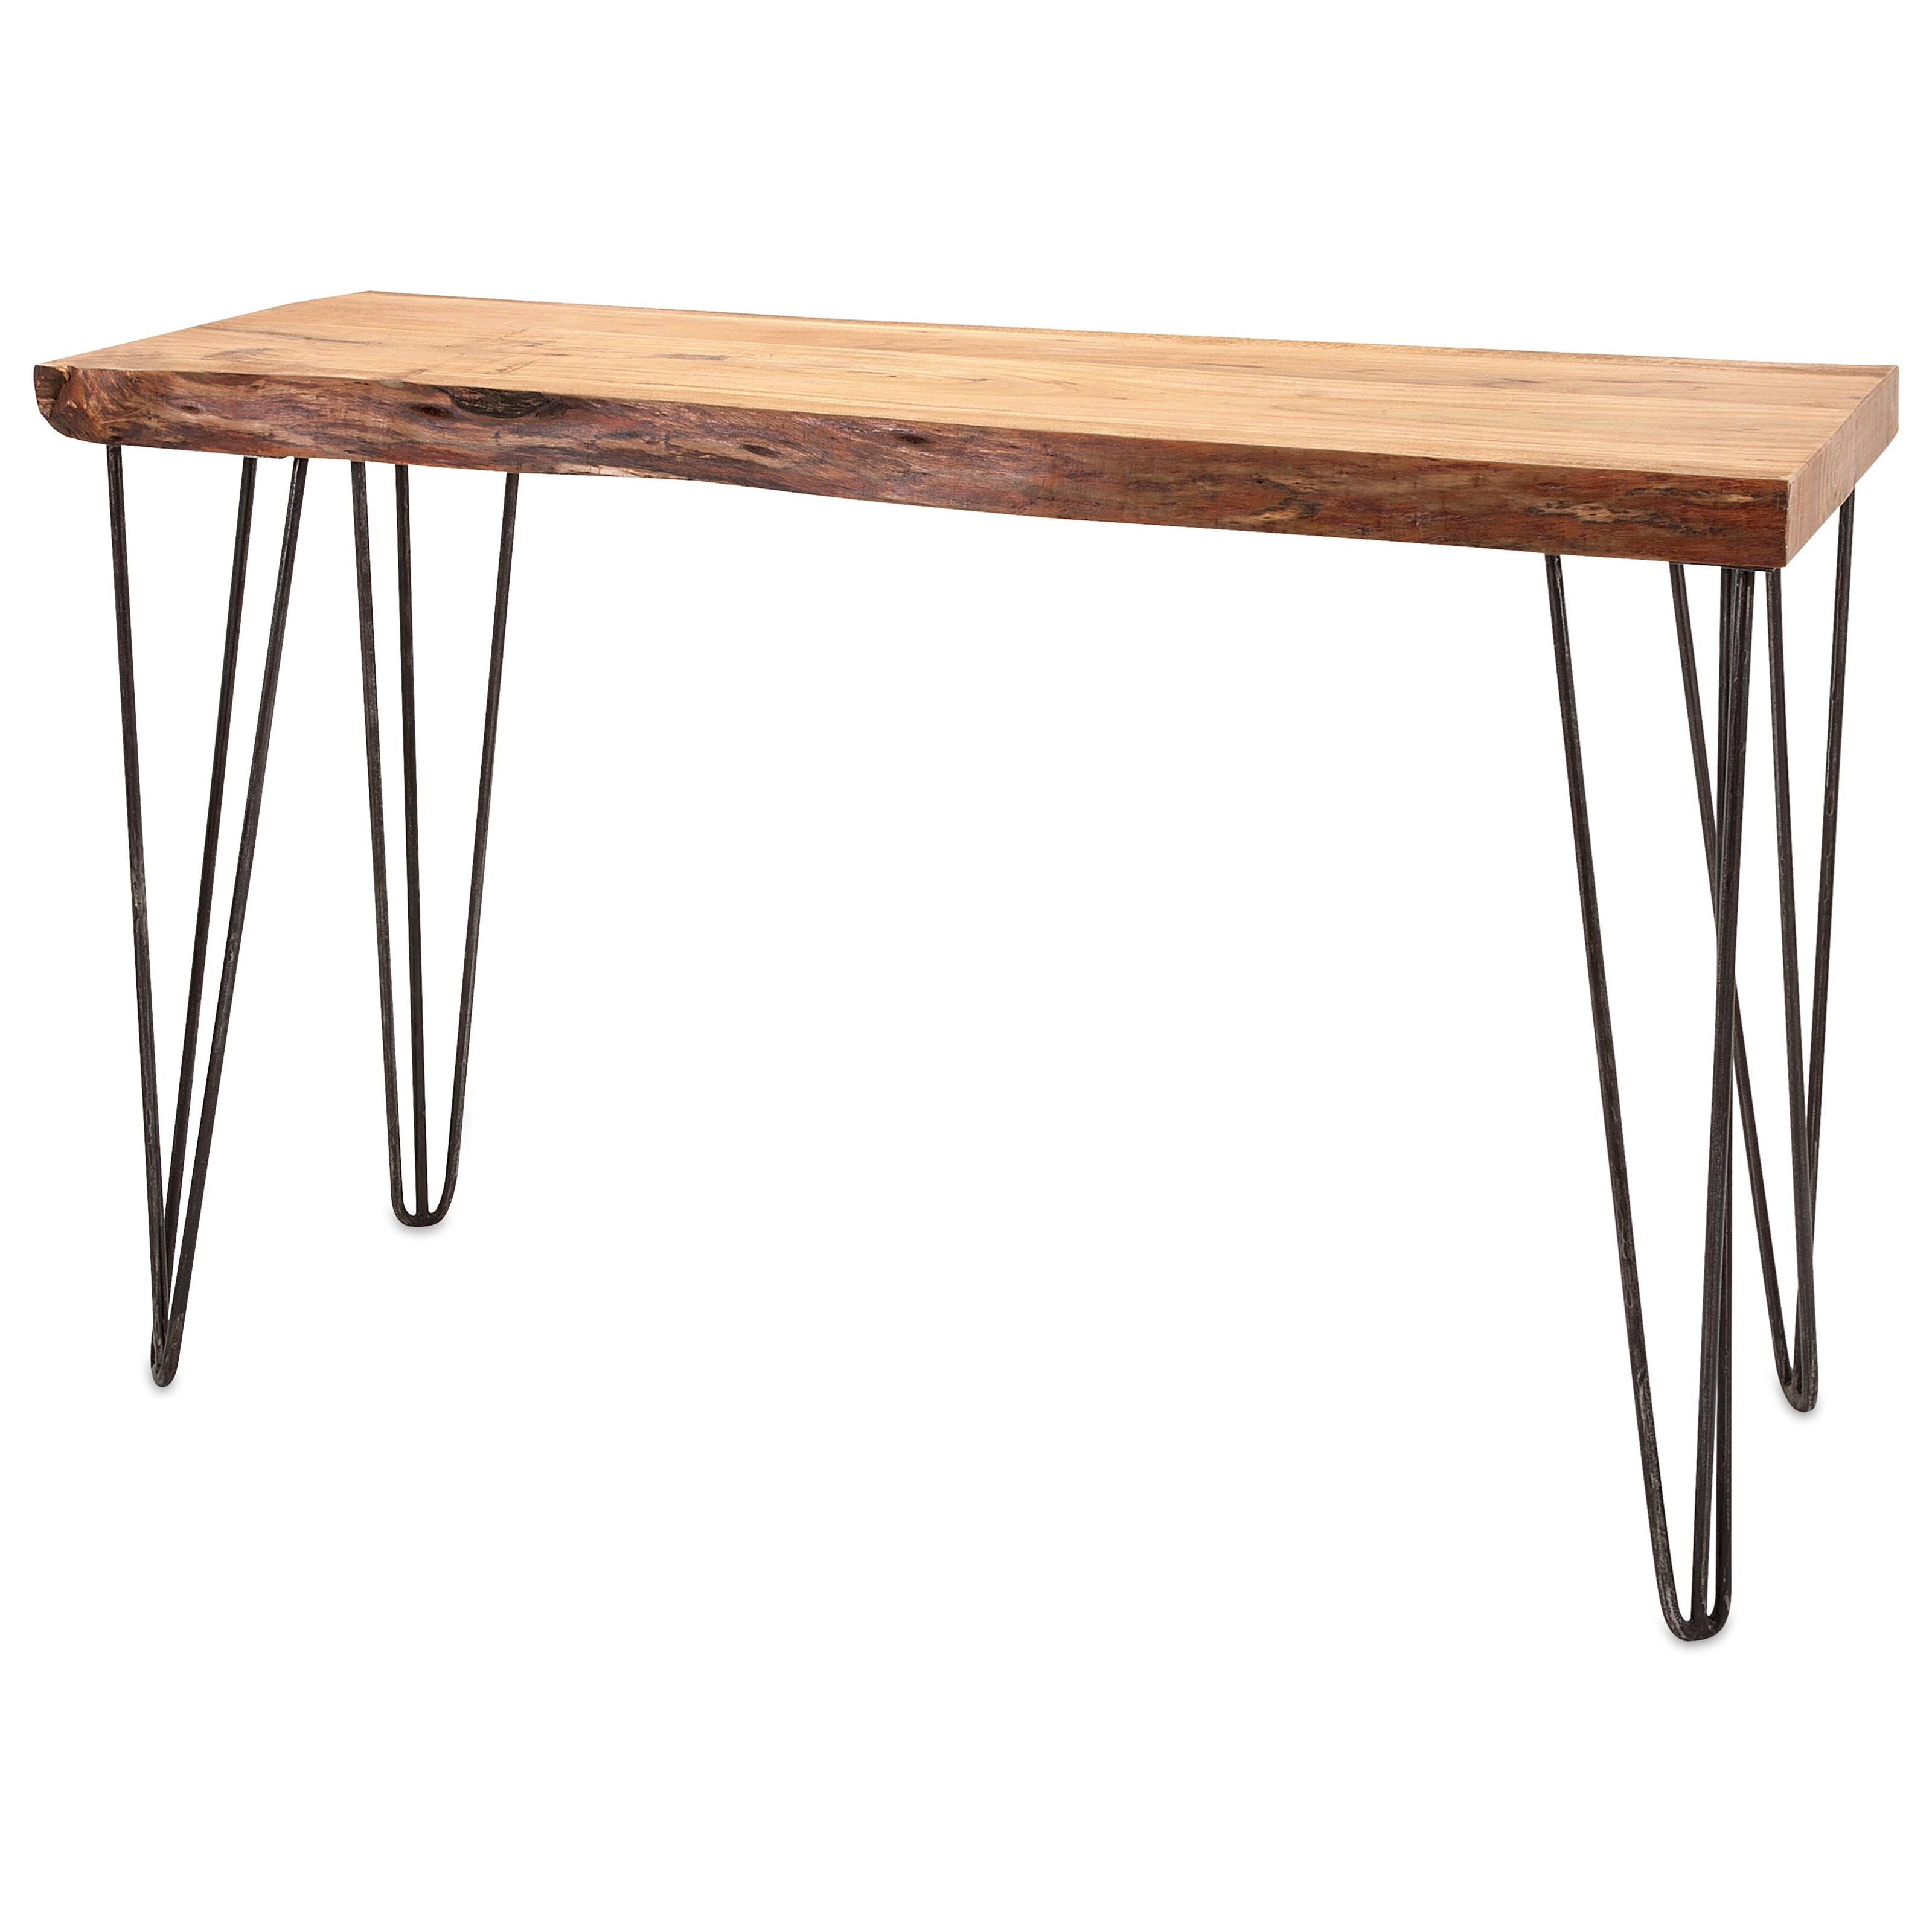 Accent Tables and Cabinets Crispin Acacia Wood Console by IMAX Worldwide Home at Alison Craig Home Furnishings